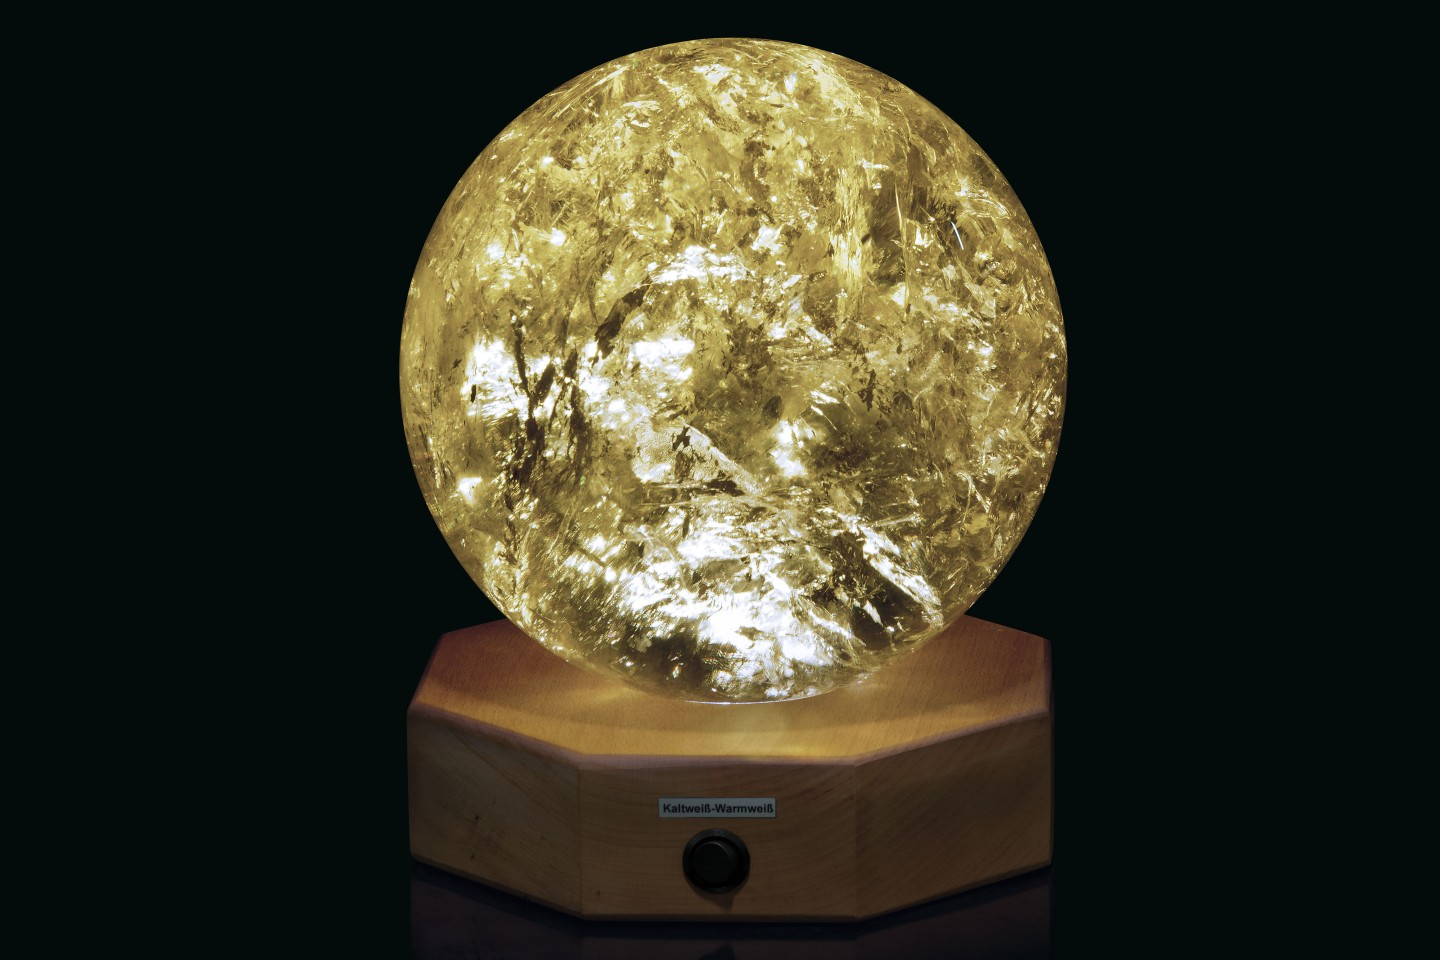 This 81⁄2 inch (21.5 cm) diameter spherical Citrine sample from Brazil has been polished to reveal areas of rainbow iridescence. The specimen is mounted on a wood base with lighting for the specimen from below.